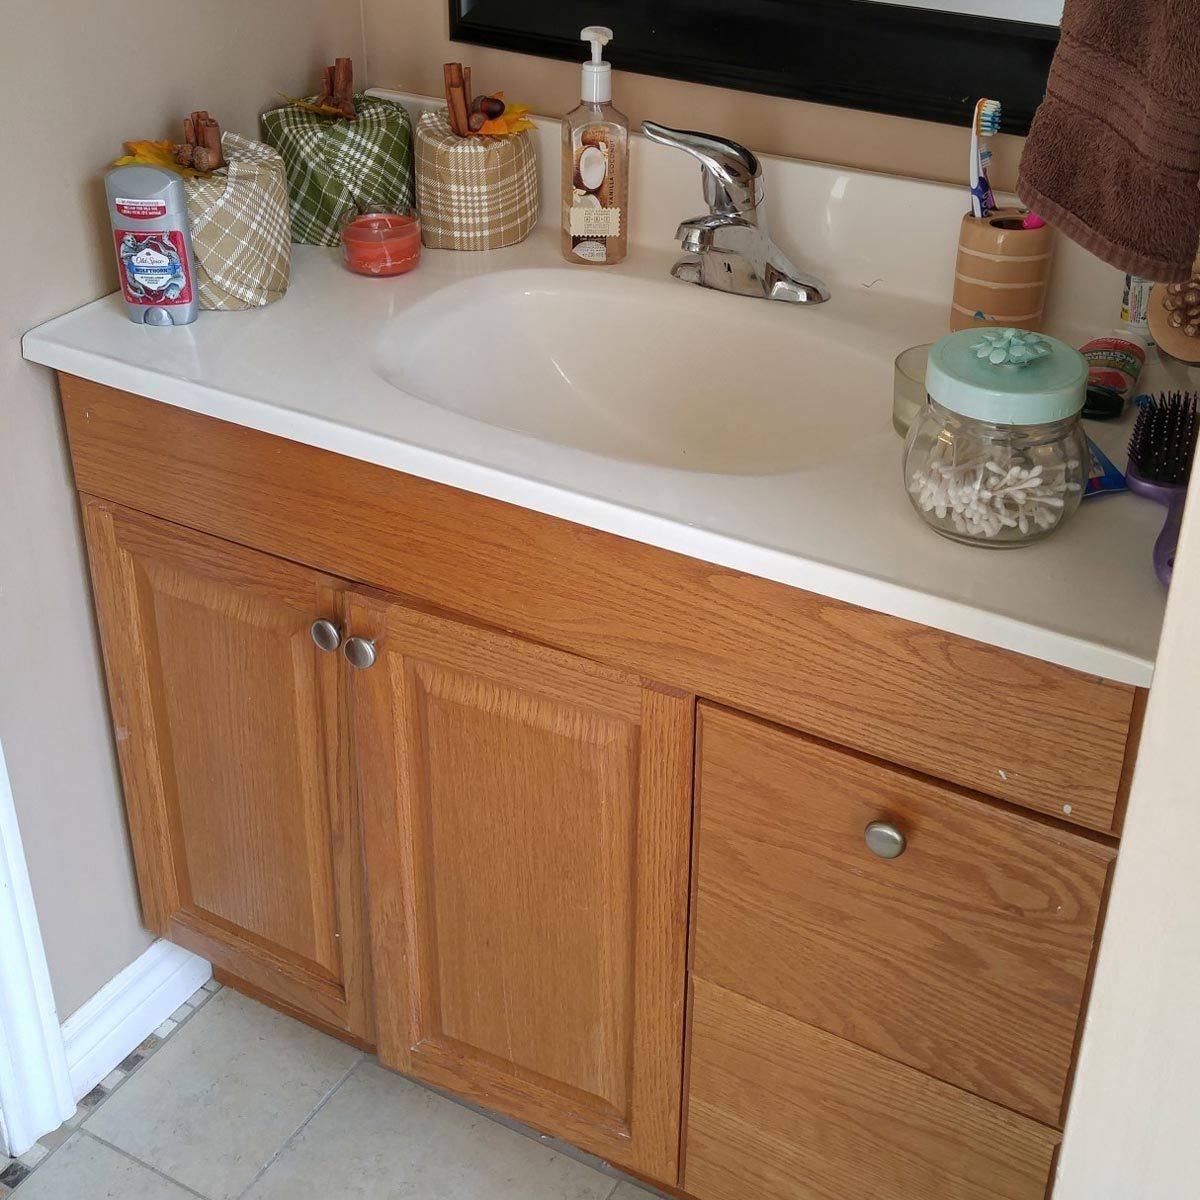 bathroom-vanity builder basic model